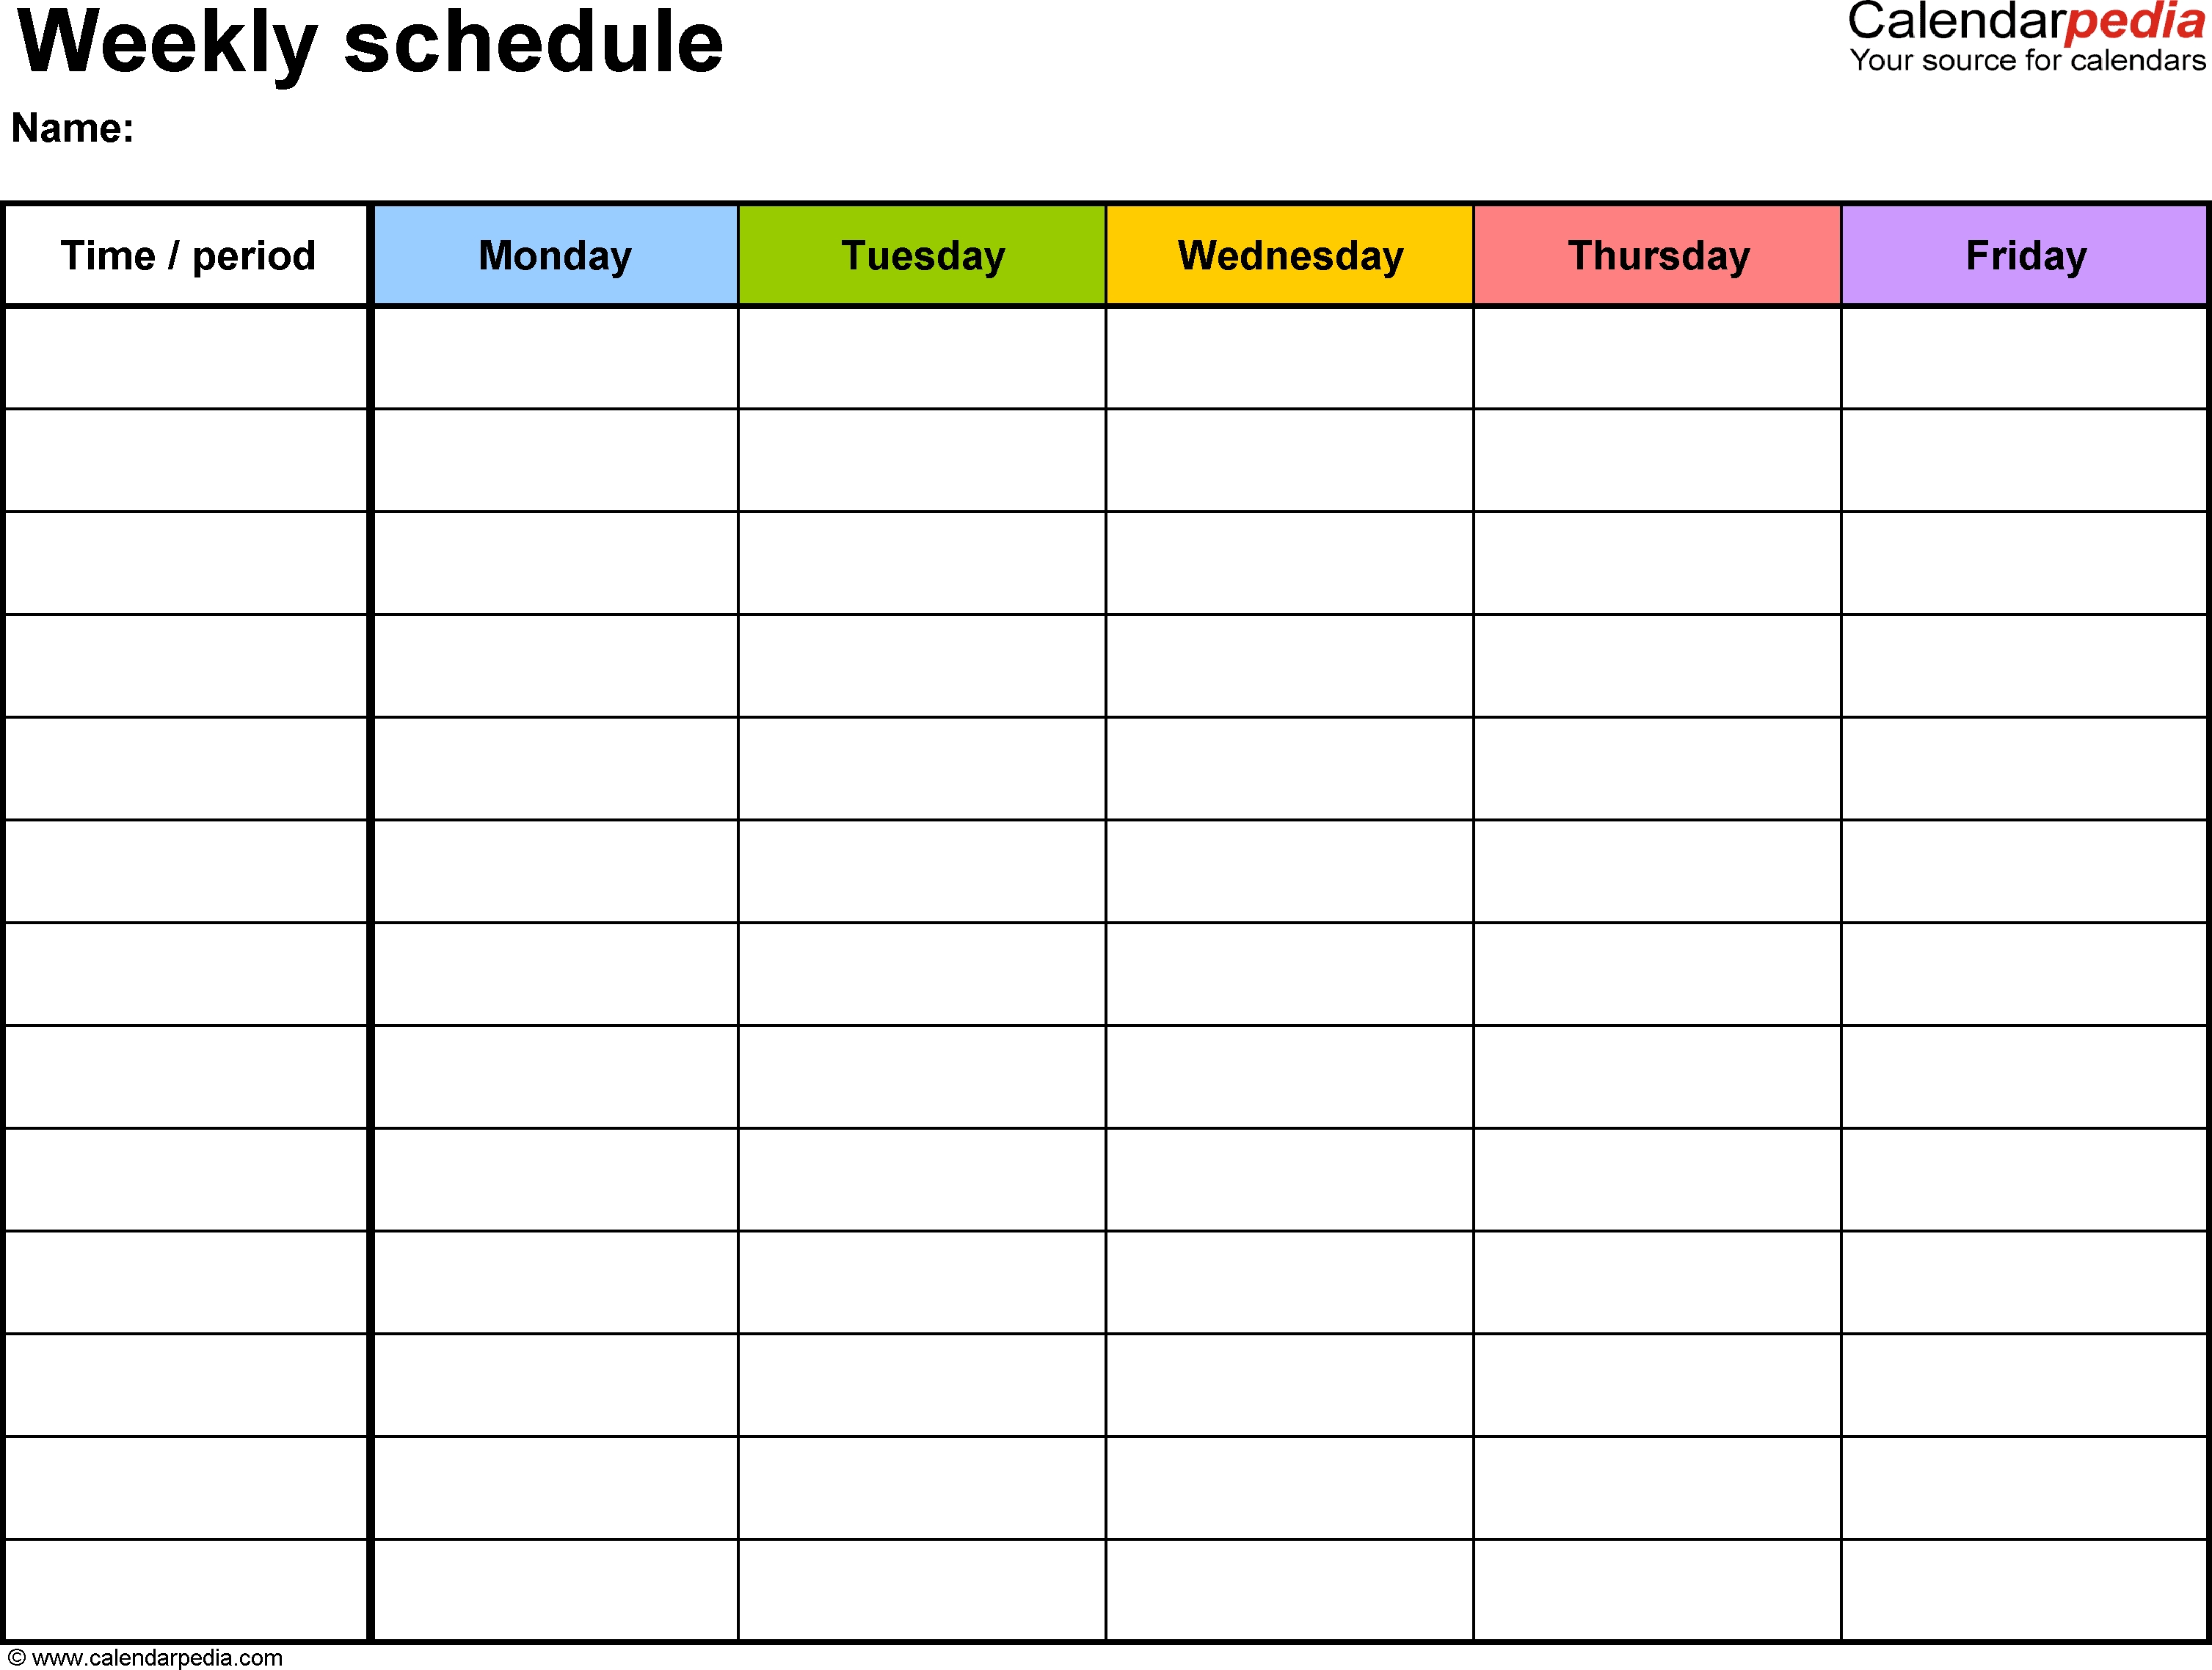 Free Weekly Schedule Templates For Word - 18 Templates_5 Day Calendar Blank